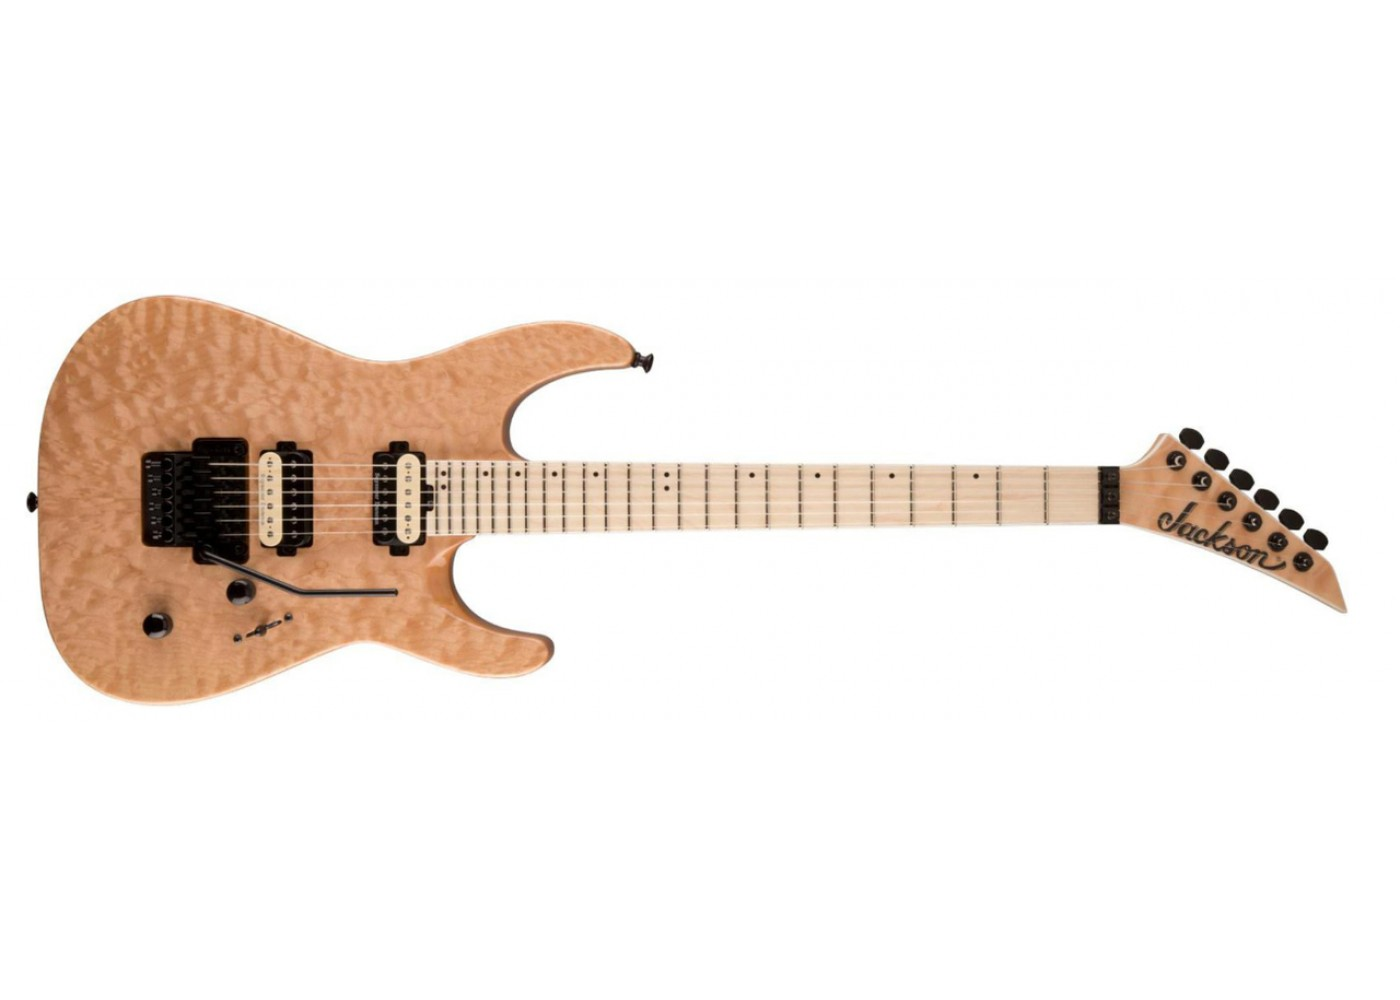 jackson dk2mq pro series dinky electric guitar with usa seymour duncan pickups quitled maple. Black Bedroom Furniture Sets. Home Design Ideas